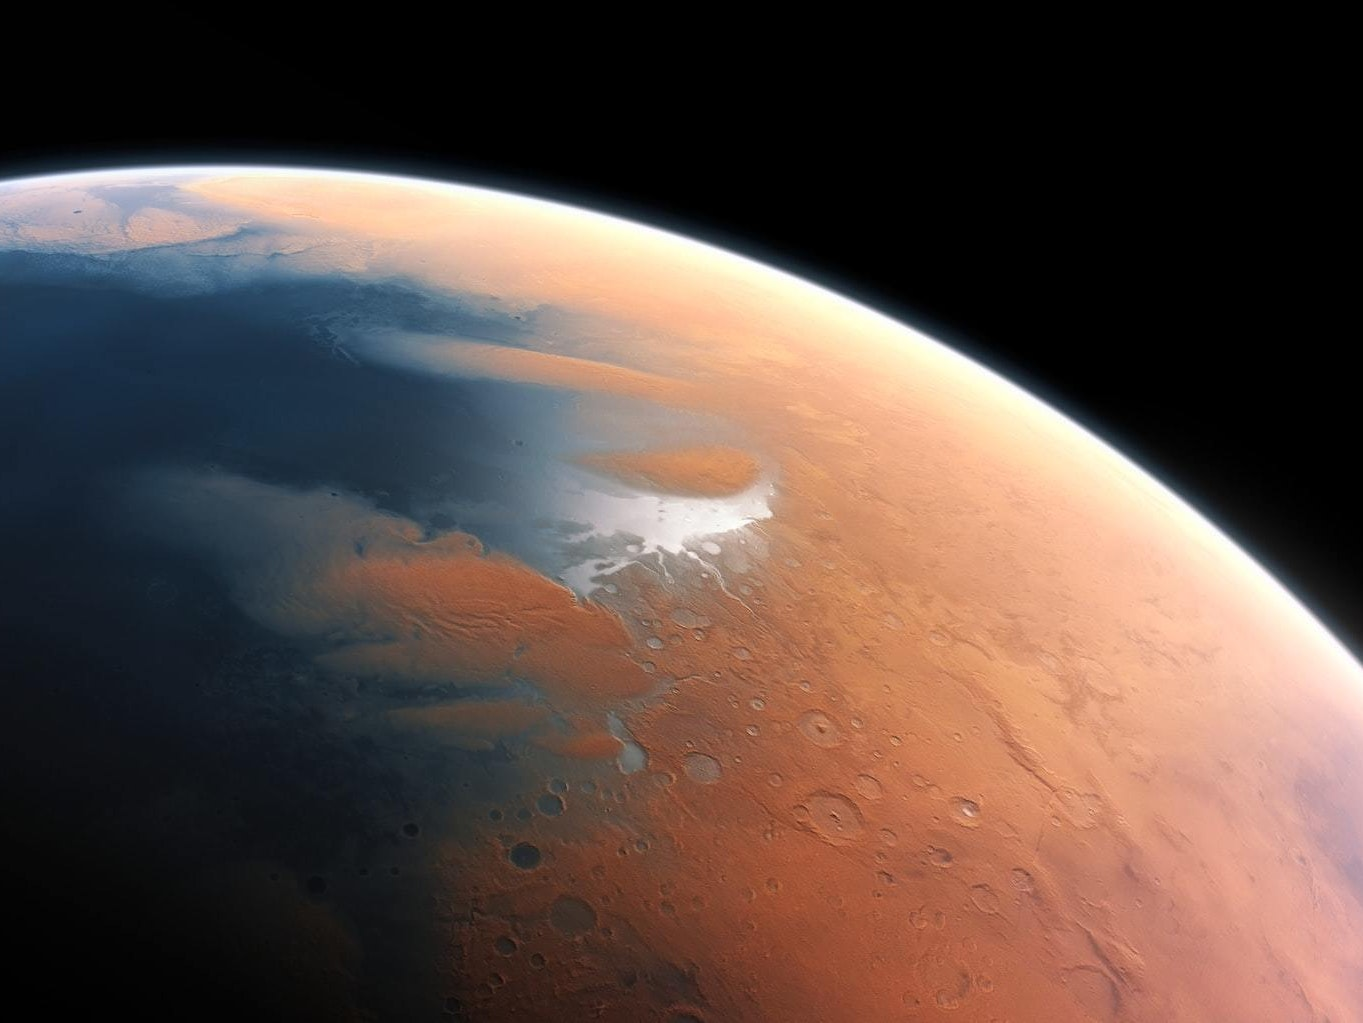 Why NASA Is So Optimistic About Finding Life on Mars